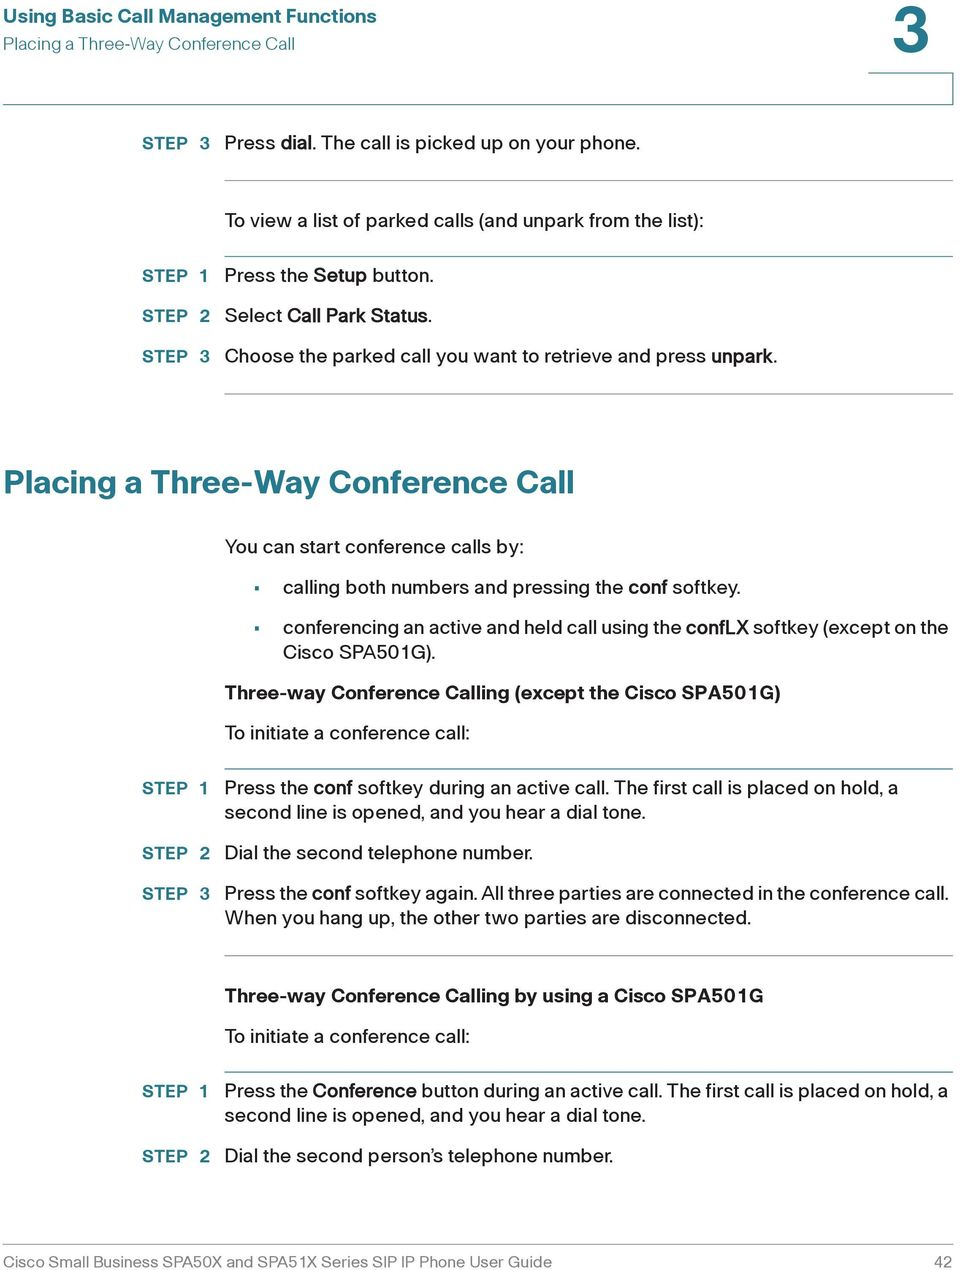 conferencing an active and held call using the conflx softkey (except on the Cisco SPA501G).